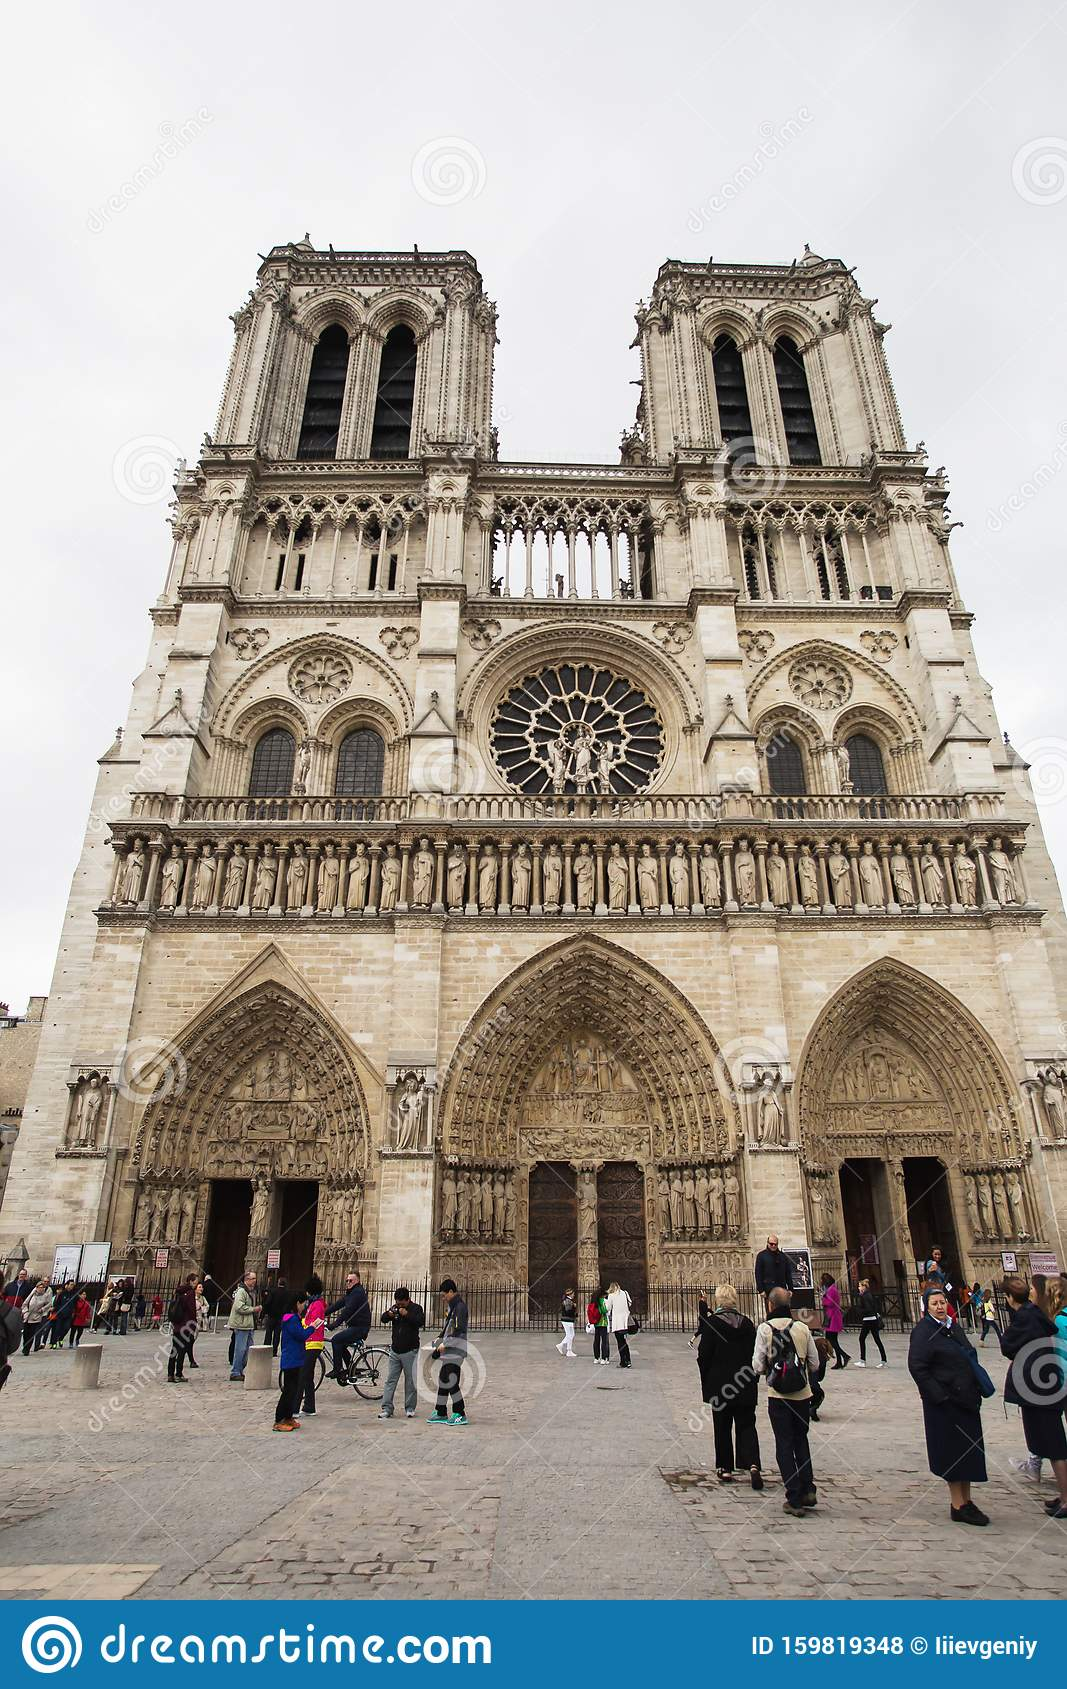 Paris France May 11 2014 Notre Dame De Paris Outside Travel Through Europe Notre Dame De Paris Before Fire Attractions In Editorial Stock Photo Image Of Cityscape Basilica 159819348